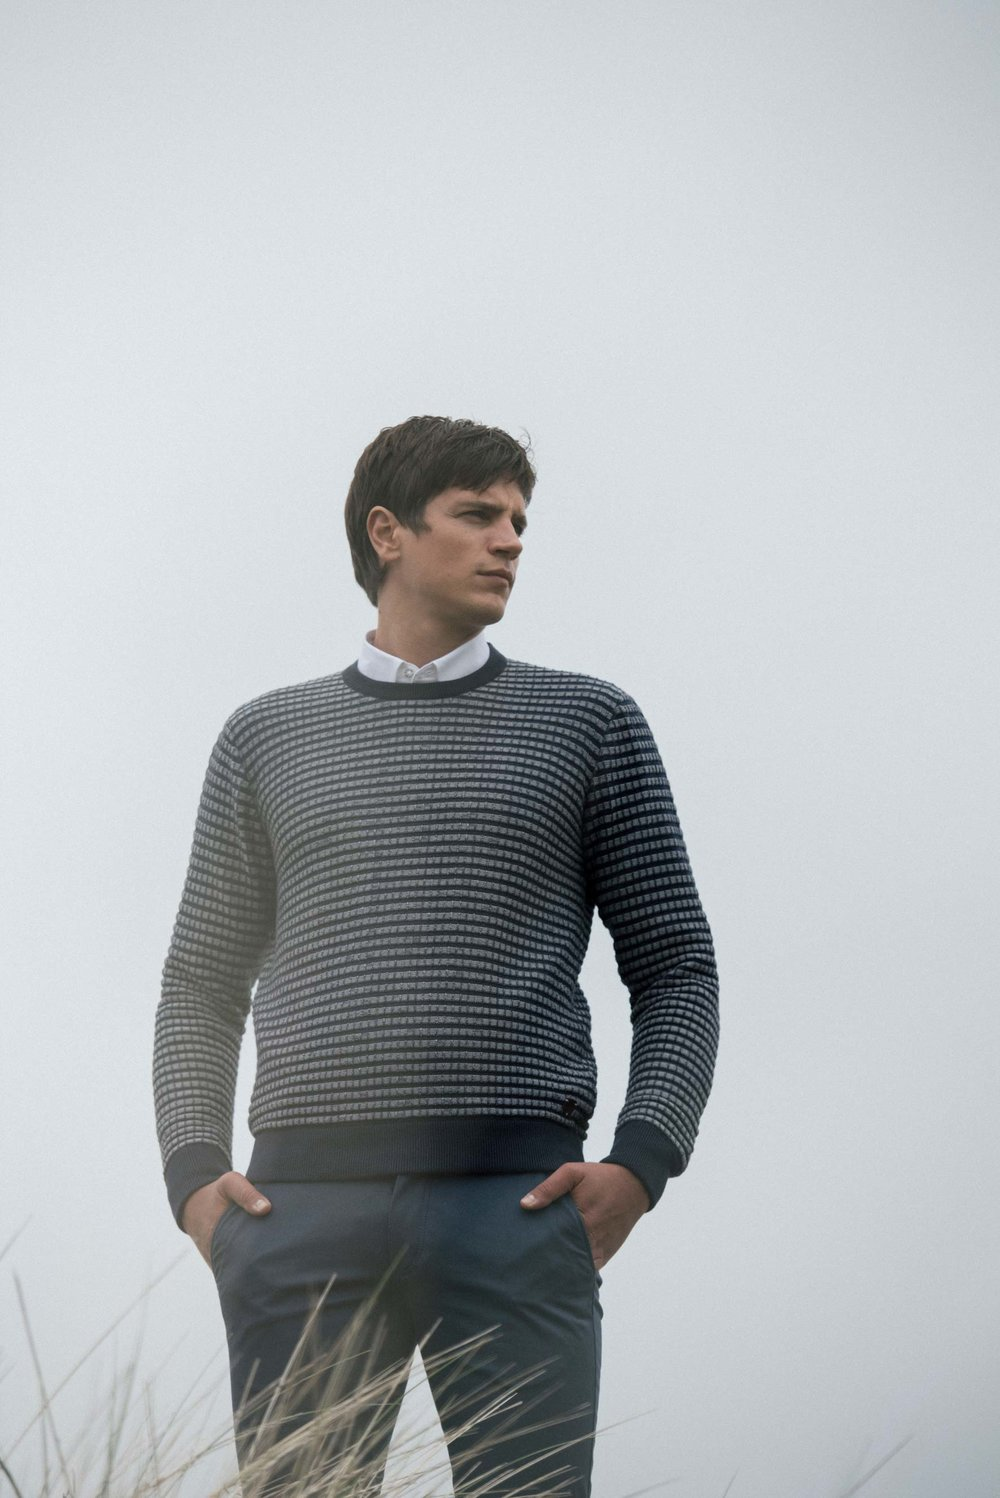 Knitwear - You can never have too much knitwear, our collection includes every style you could need from brands such as Barbour, Gabicci, Gant and more. With styles ranging from zip throughs and v-necks to rollnecks and sweats, you'll be covered for all occasions, whether it's a chunky cardigan for the colder months or a lightweight crew neck for those warmer days.